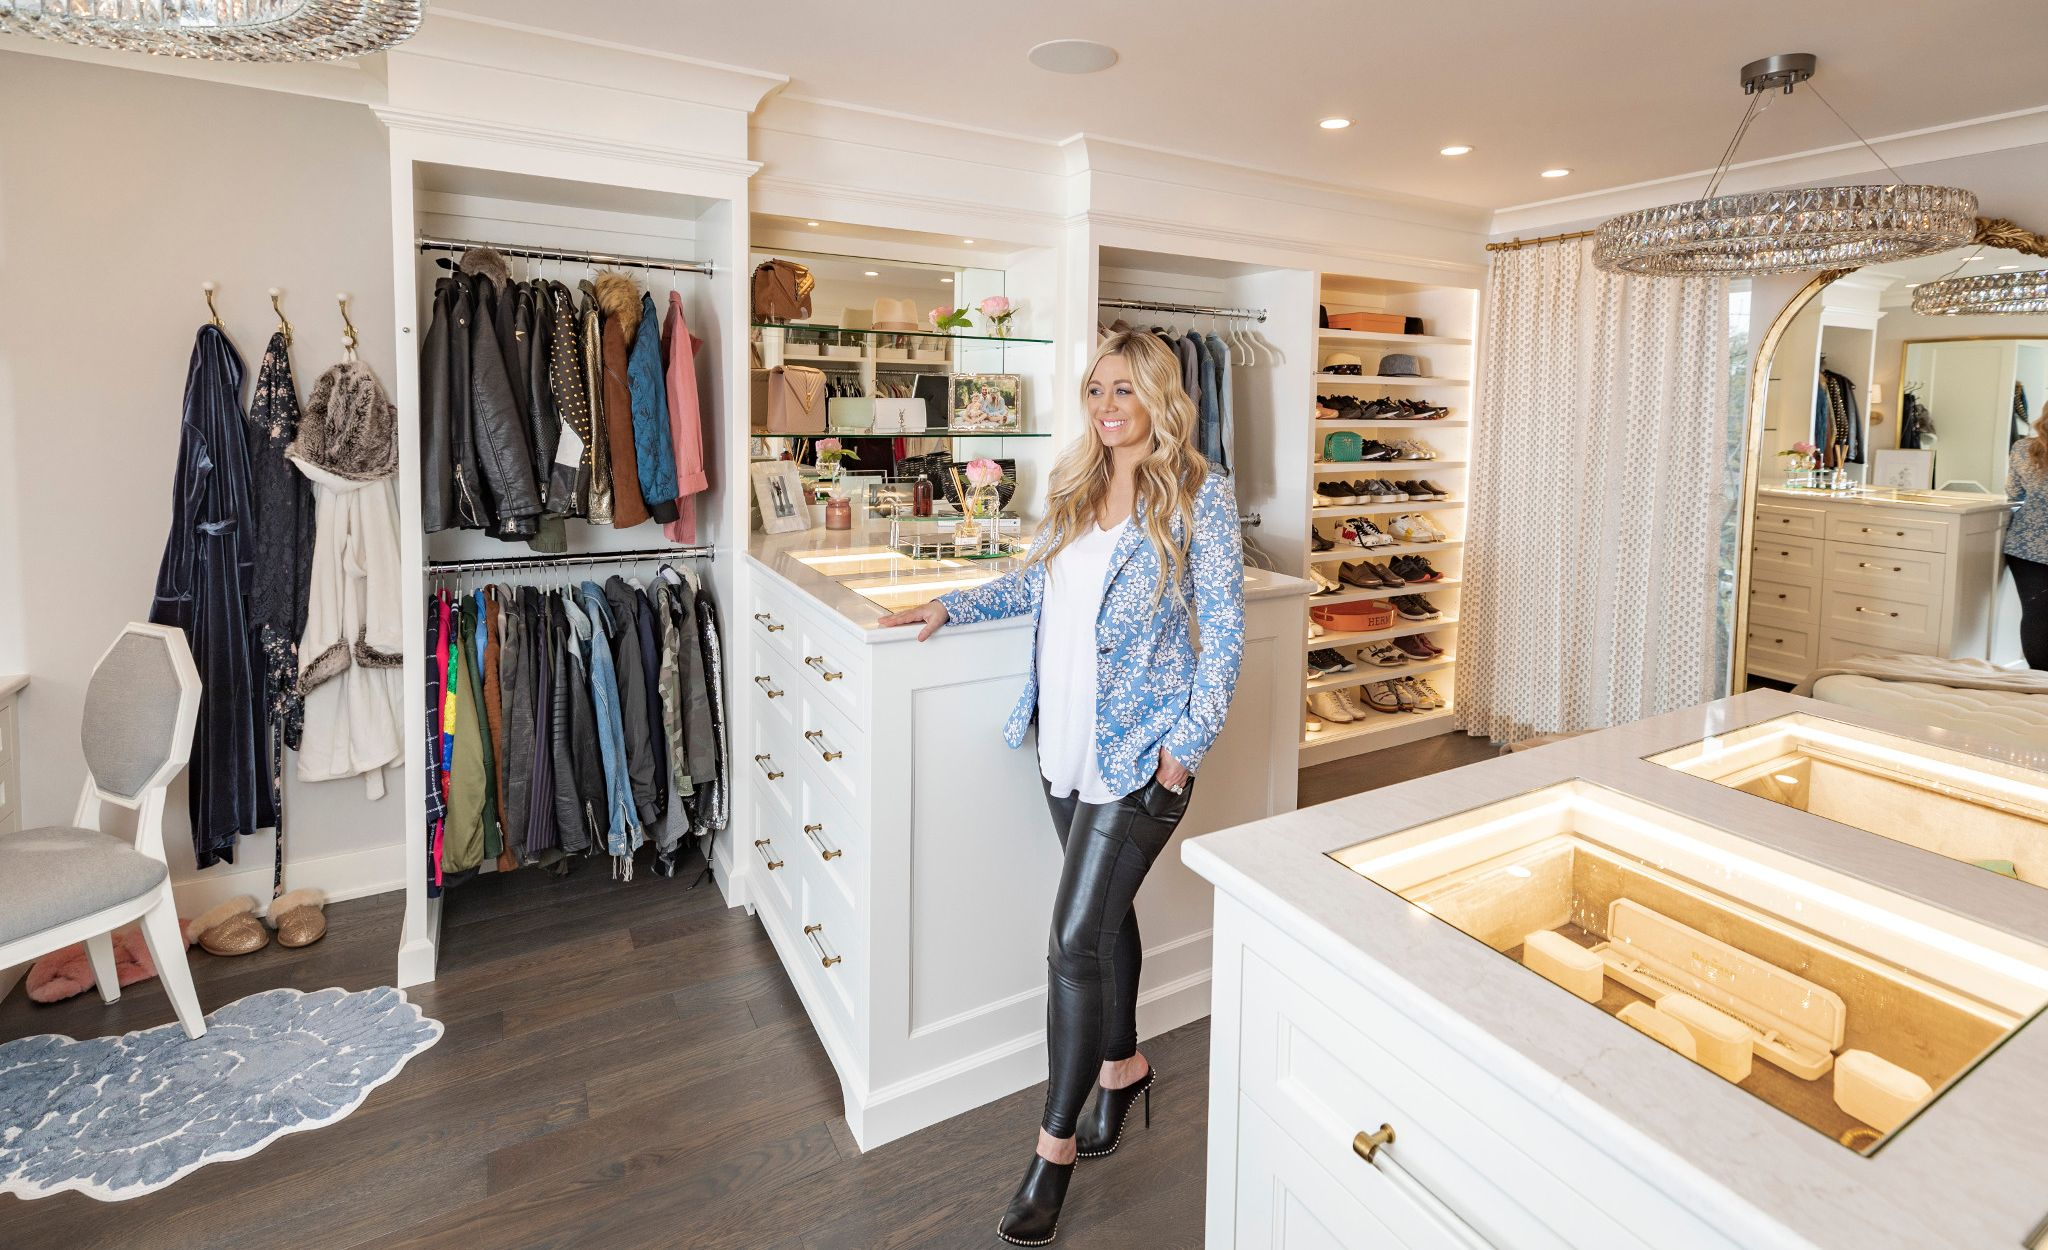 Carly Zucker in her completed closet renovation.